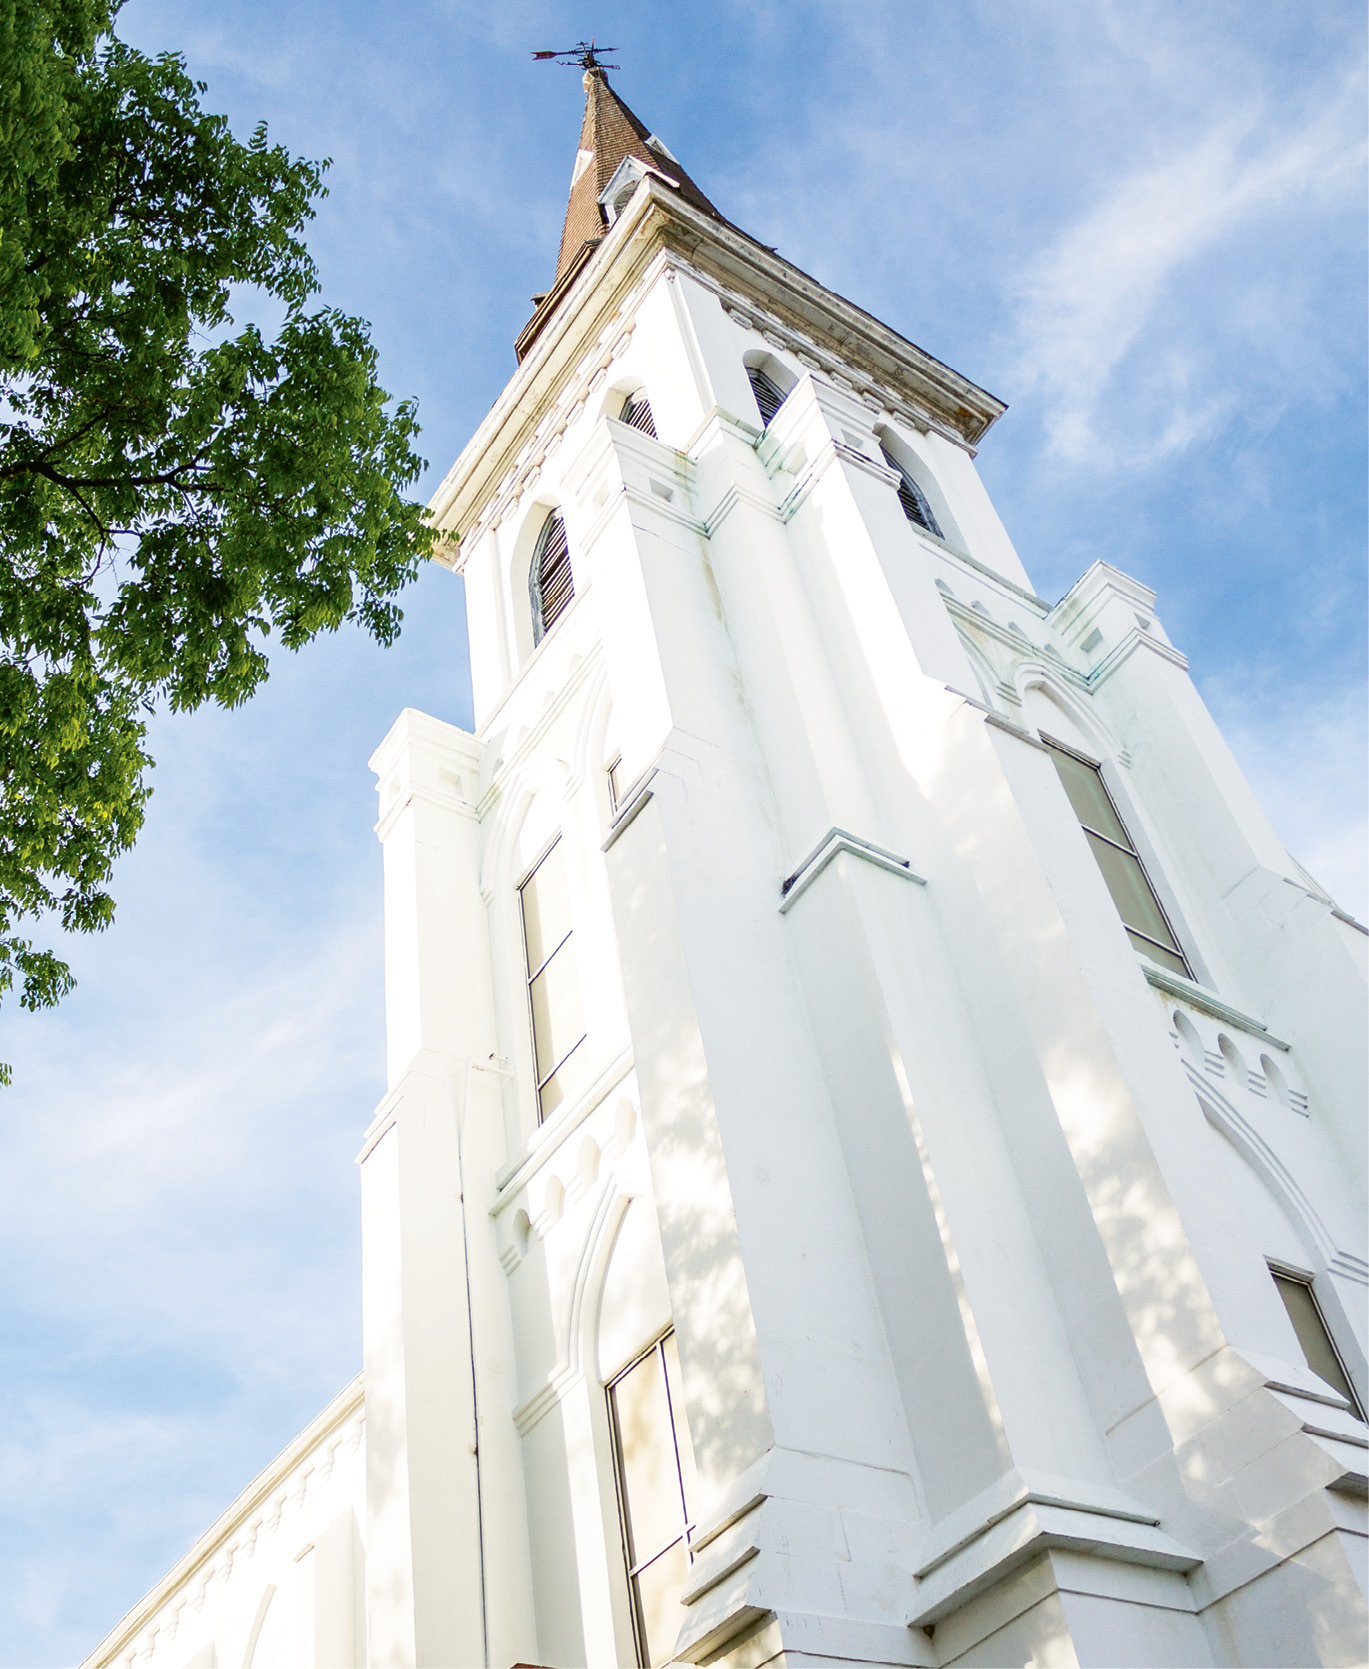 """The circa-1891 edifice of Emanuel African Methodist Episcopal Church in downtown Charleston; with its congregation founded in 1816, it is the oldest AME church in the South and often referred to as """"Mother Emanuel."""" Photograph by Amy Luke"""